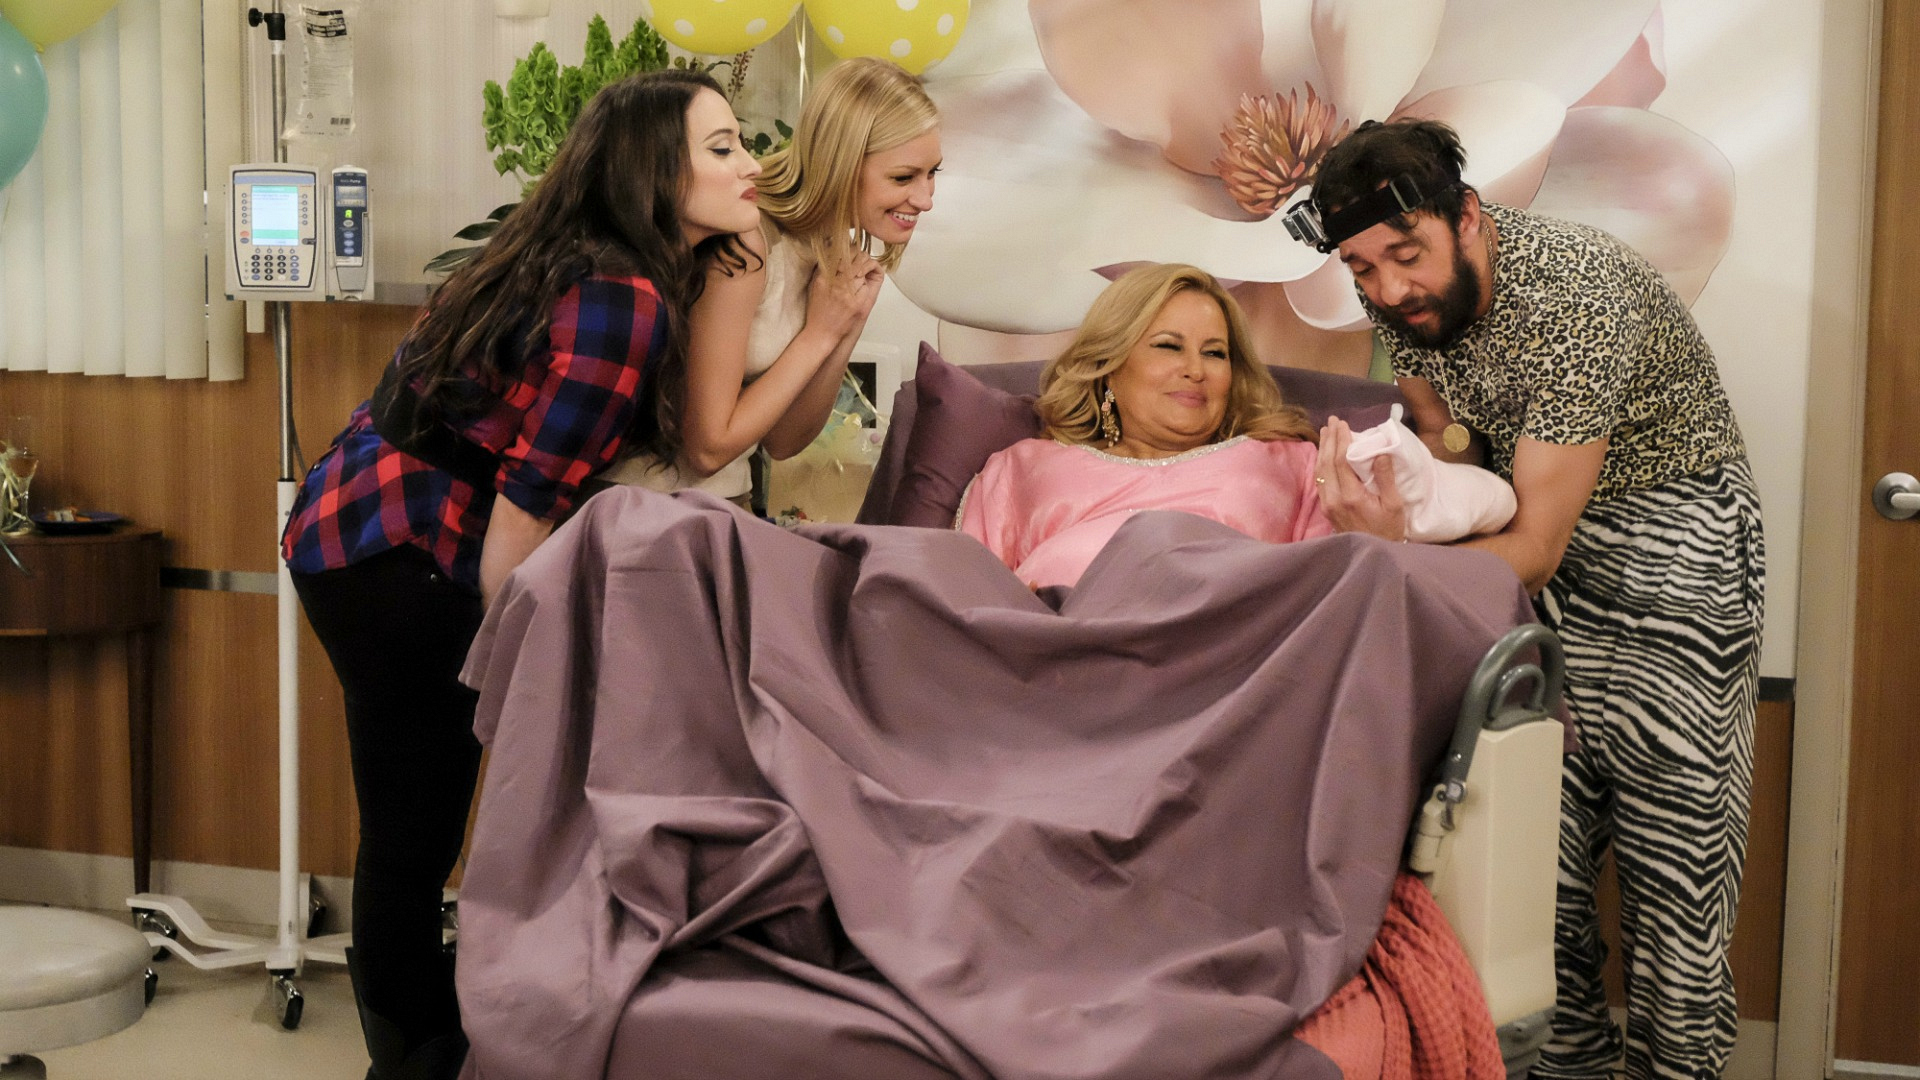 We're fired up to see Sophie and Oleg raise their baby girl on 2 Broke Girls.